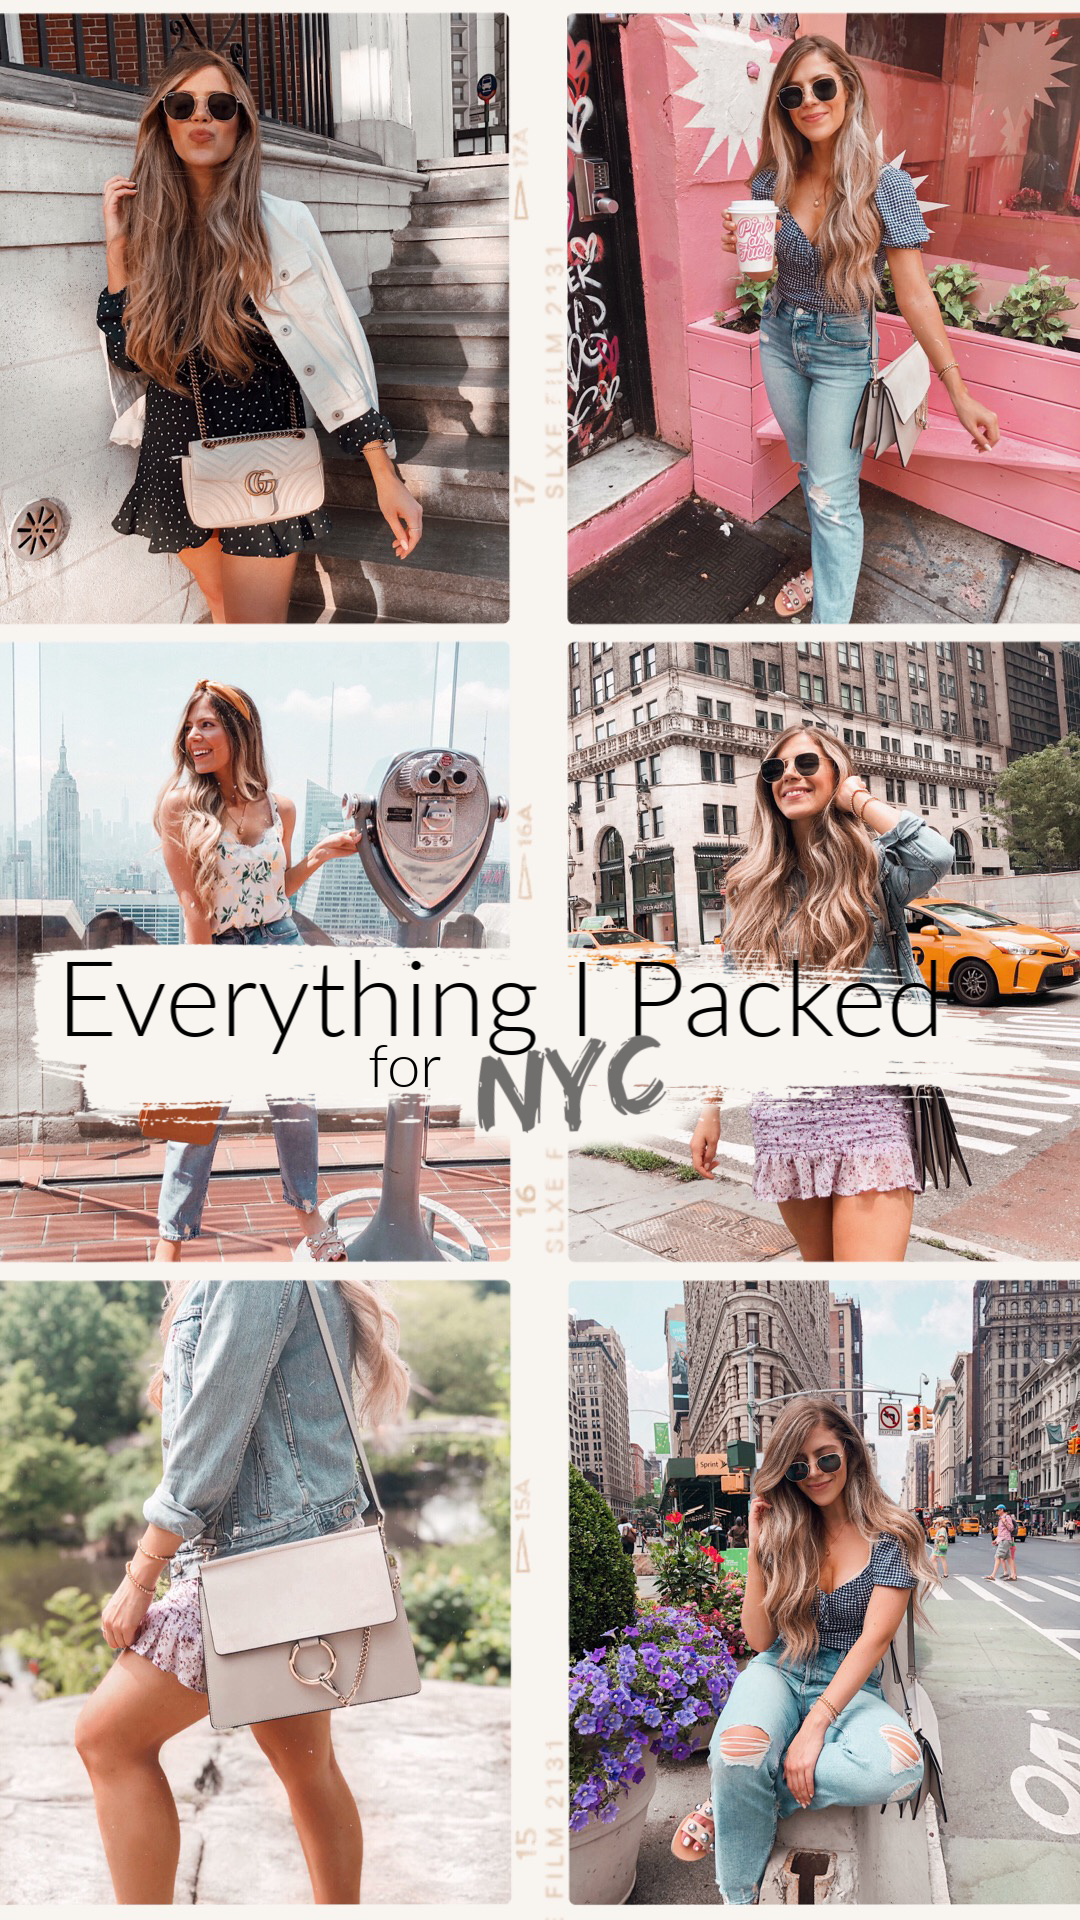 Everything I Packed For 4 Days in NYC